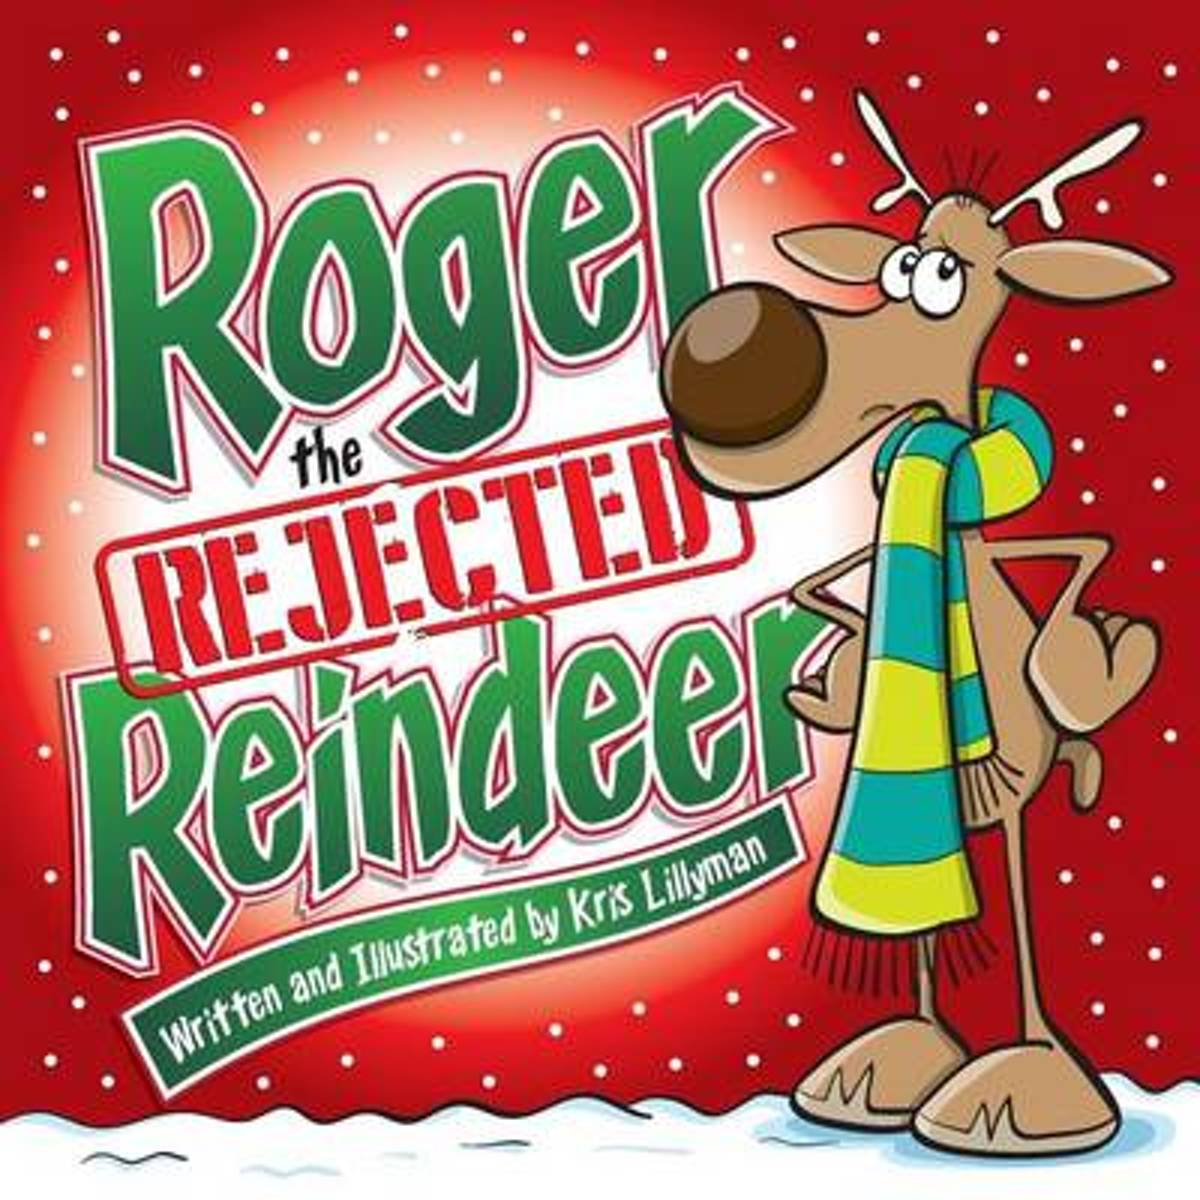 Roger the Rejected Reindeer